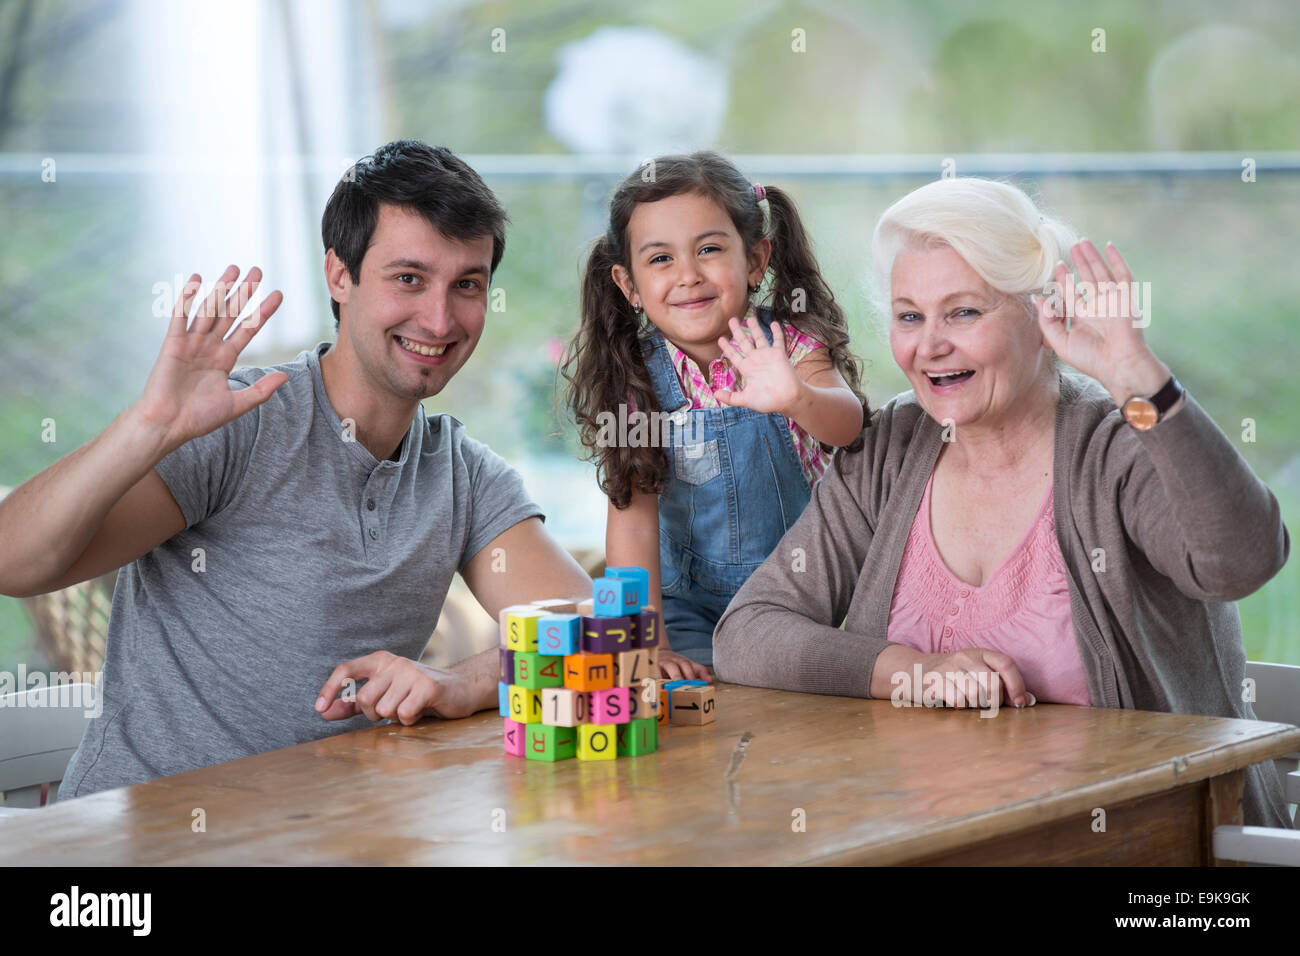 Portrait of senior woman with son and granddaughter waving hands at table - Stock Image